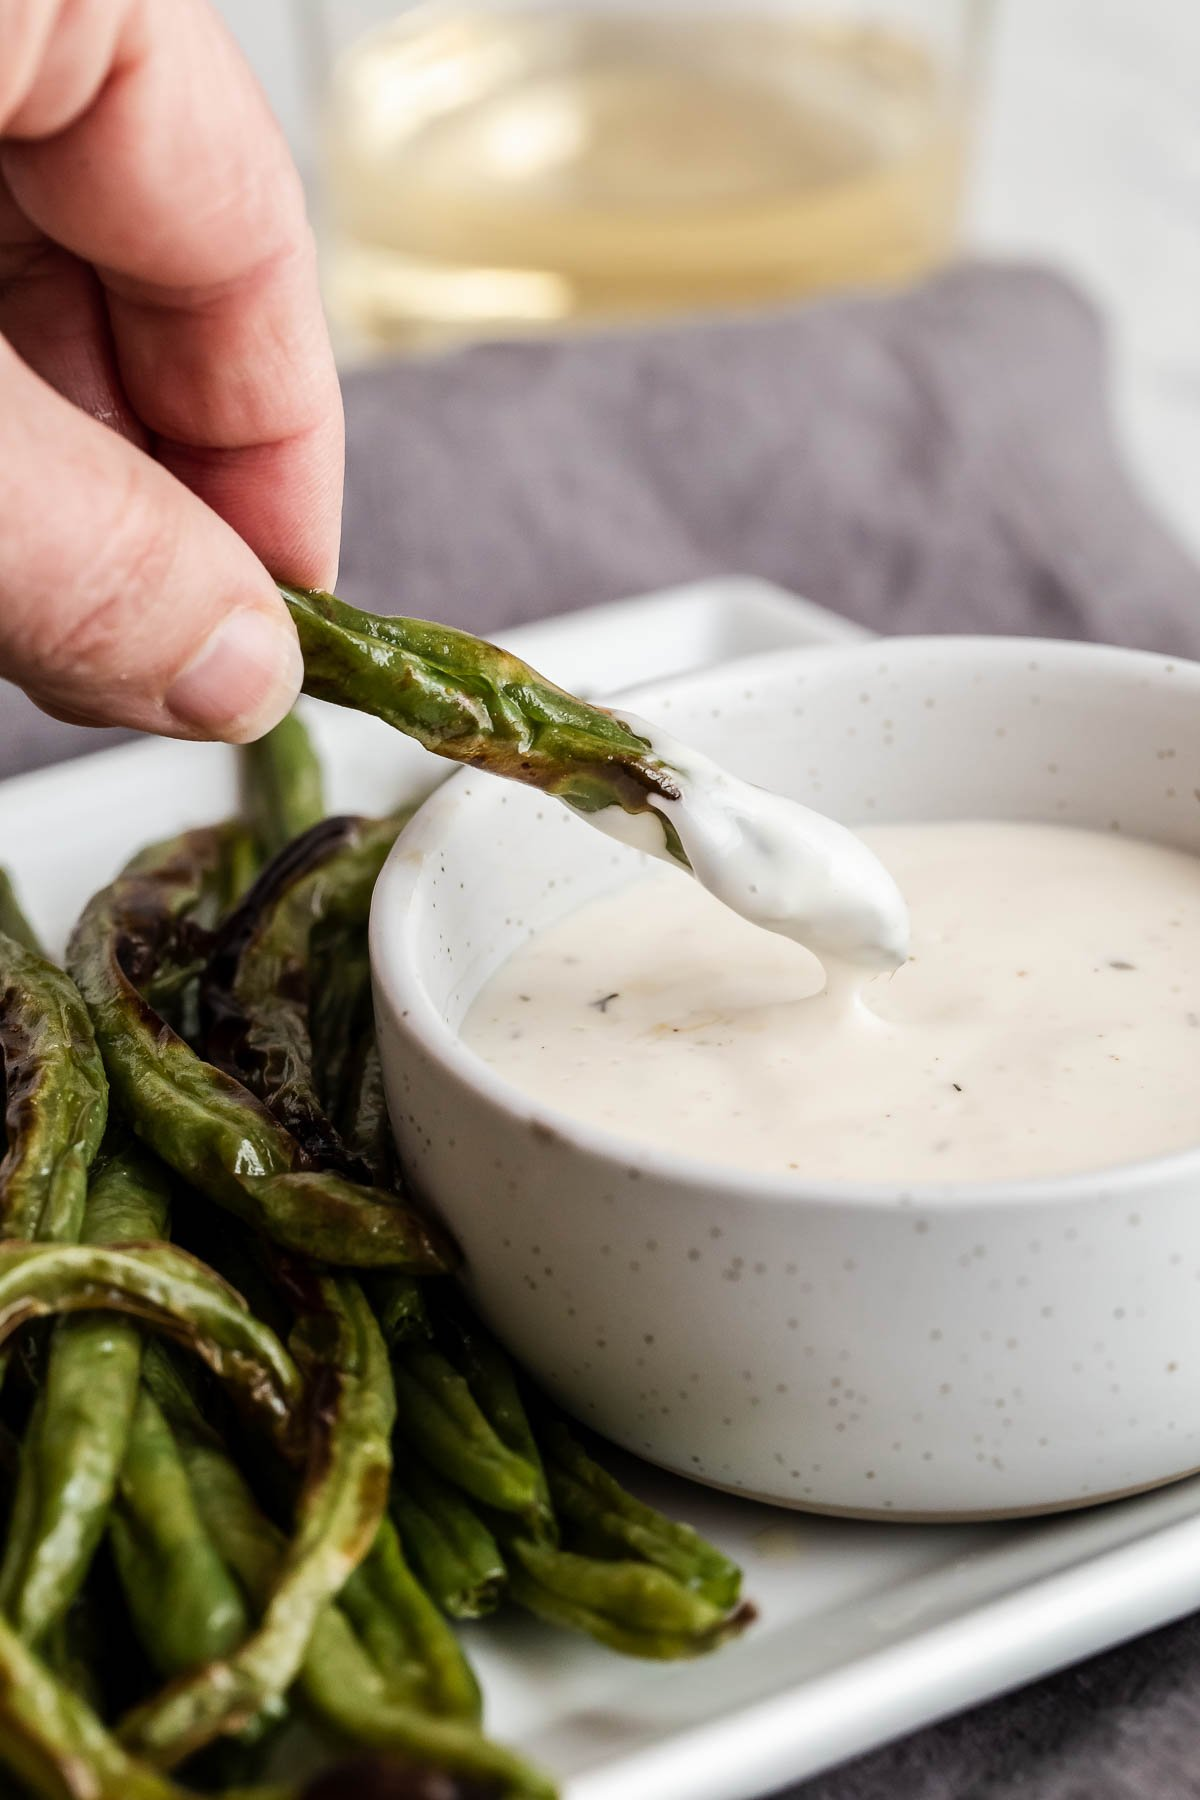 Green bean dipped in ranch.